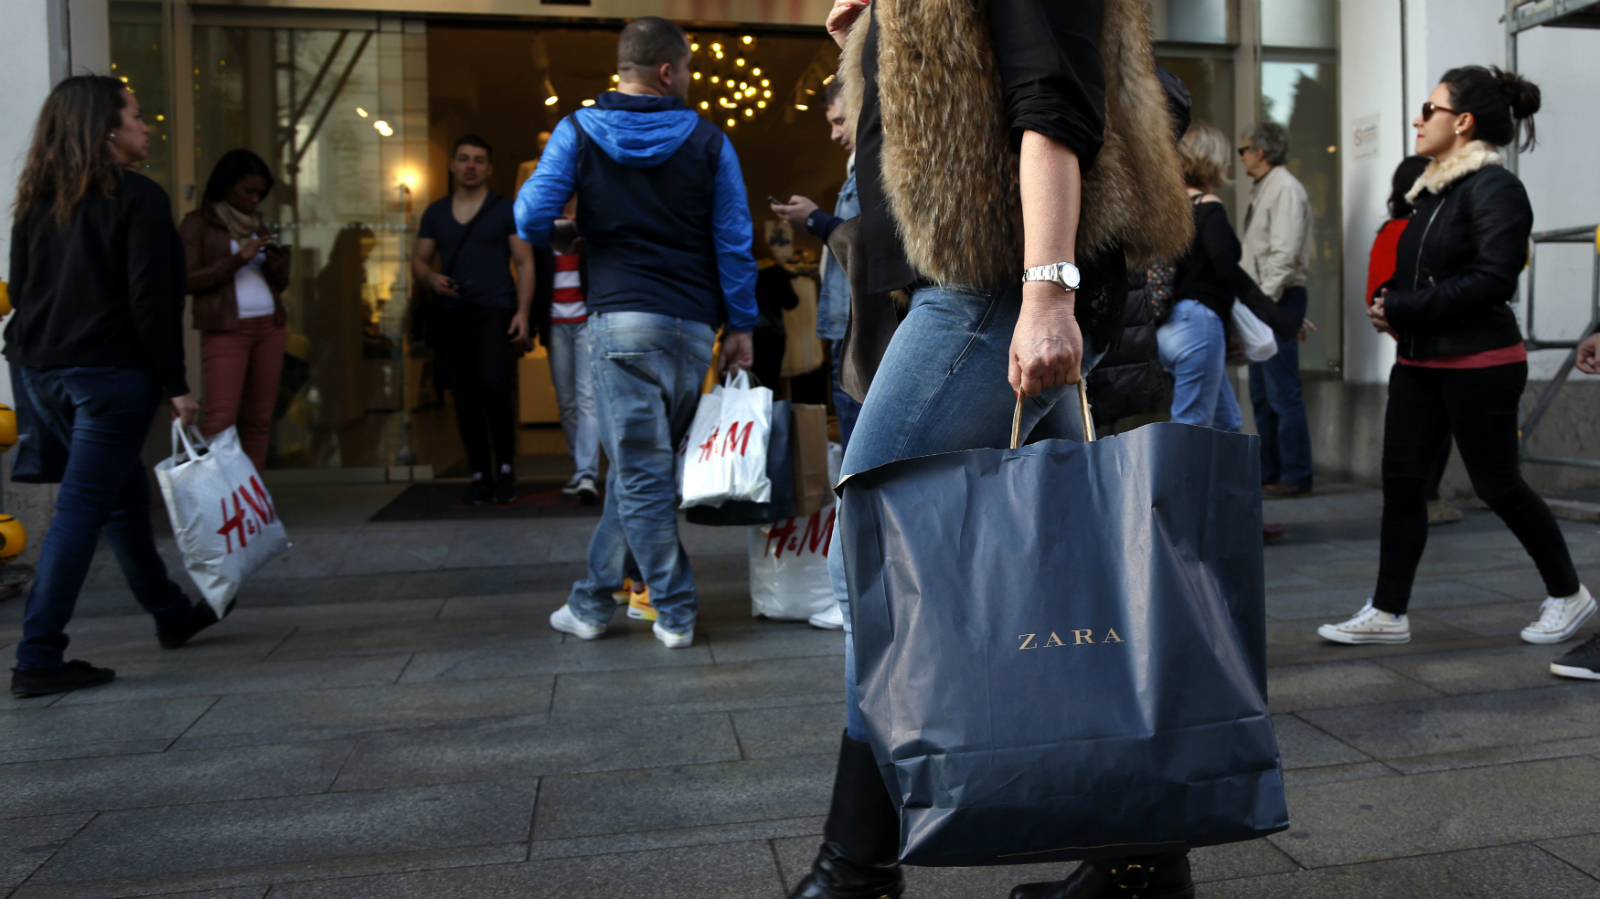 zara woman combined office. A Woman Carrying Zara Shopping Bag Walks Past People Holding H\u0026M Bags Outside An Combined Office